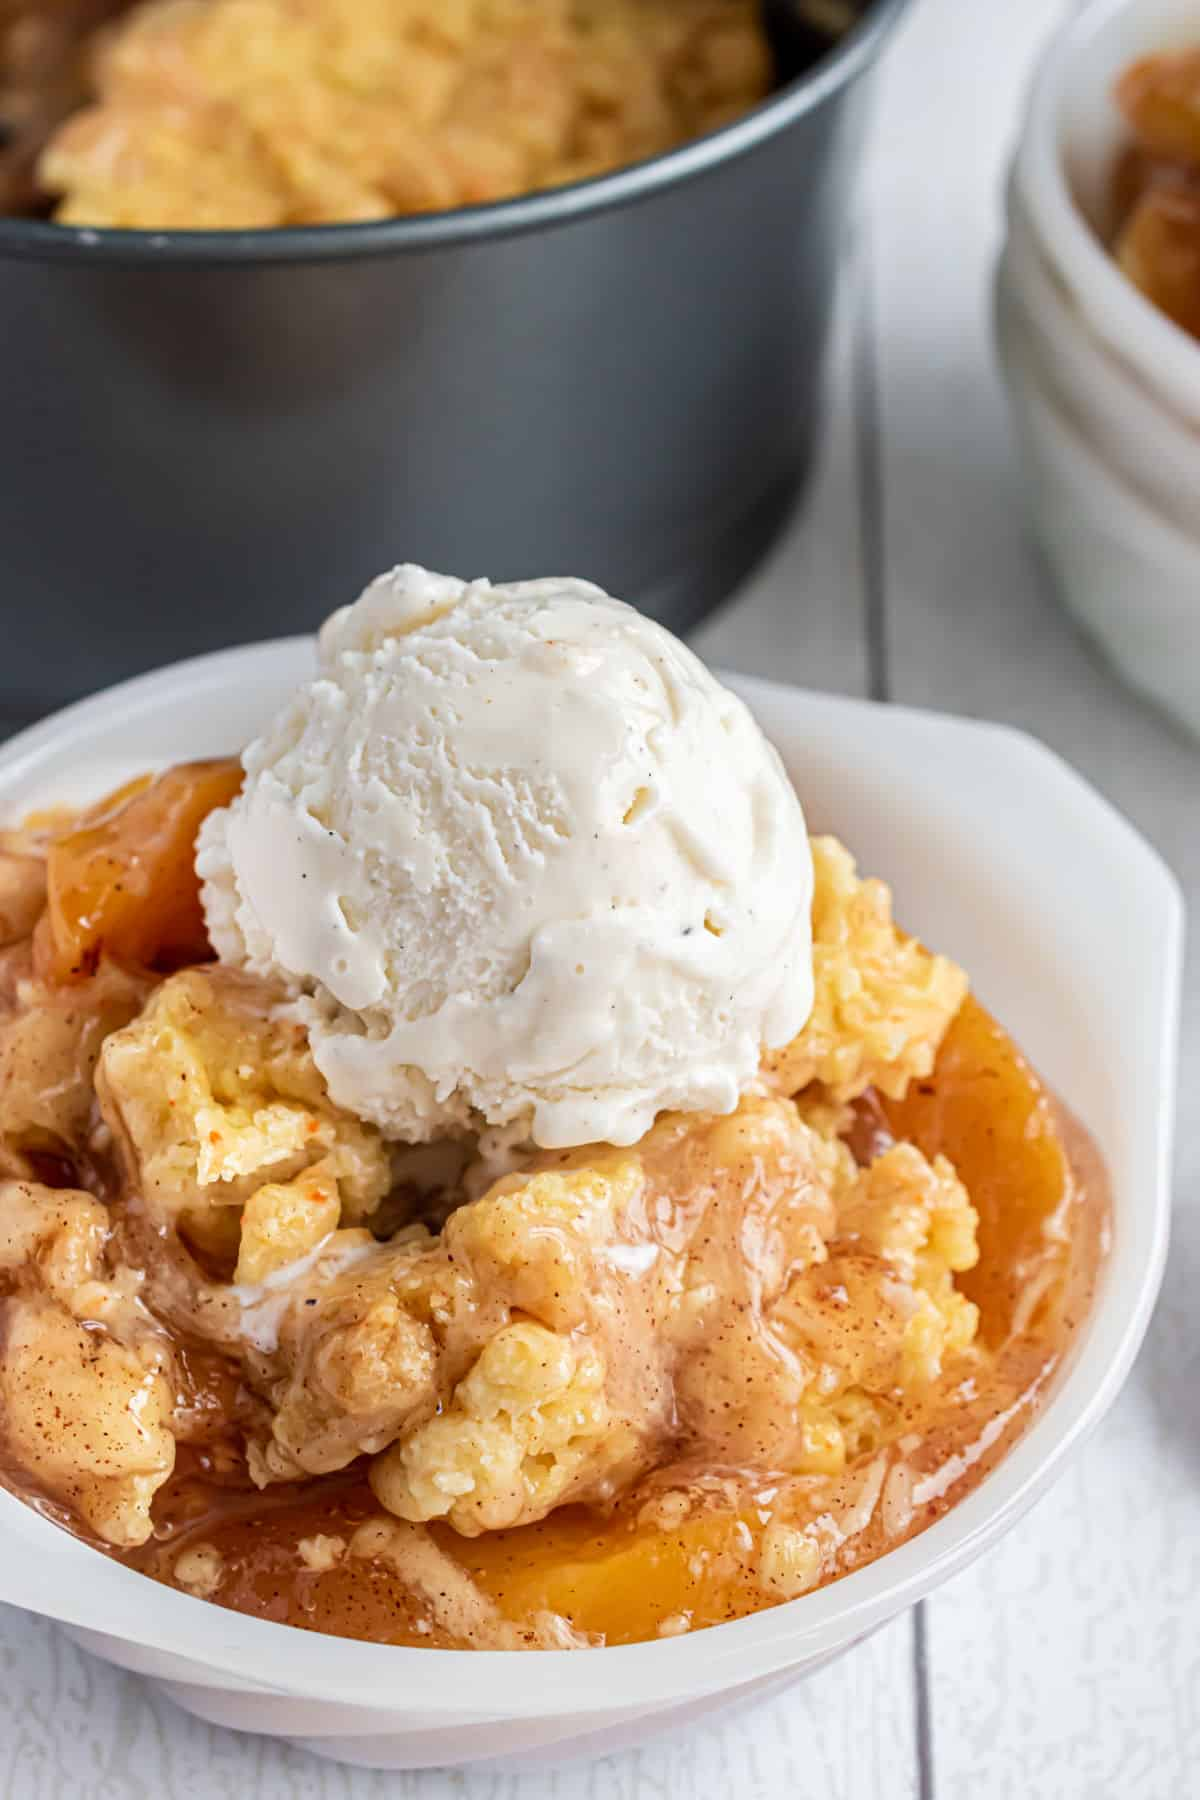 Peach cobbler served in a white bowl with vanilla ice cream on top.